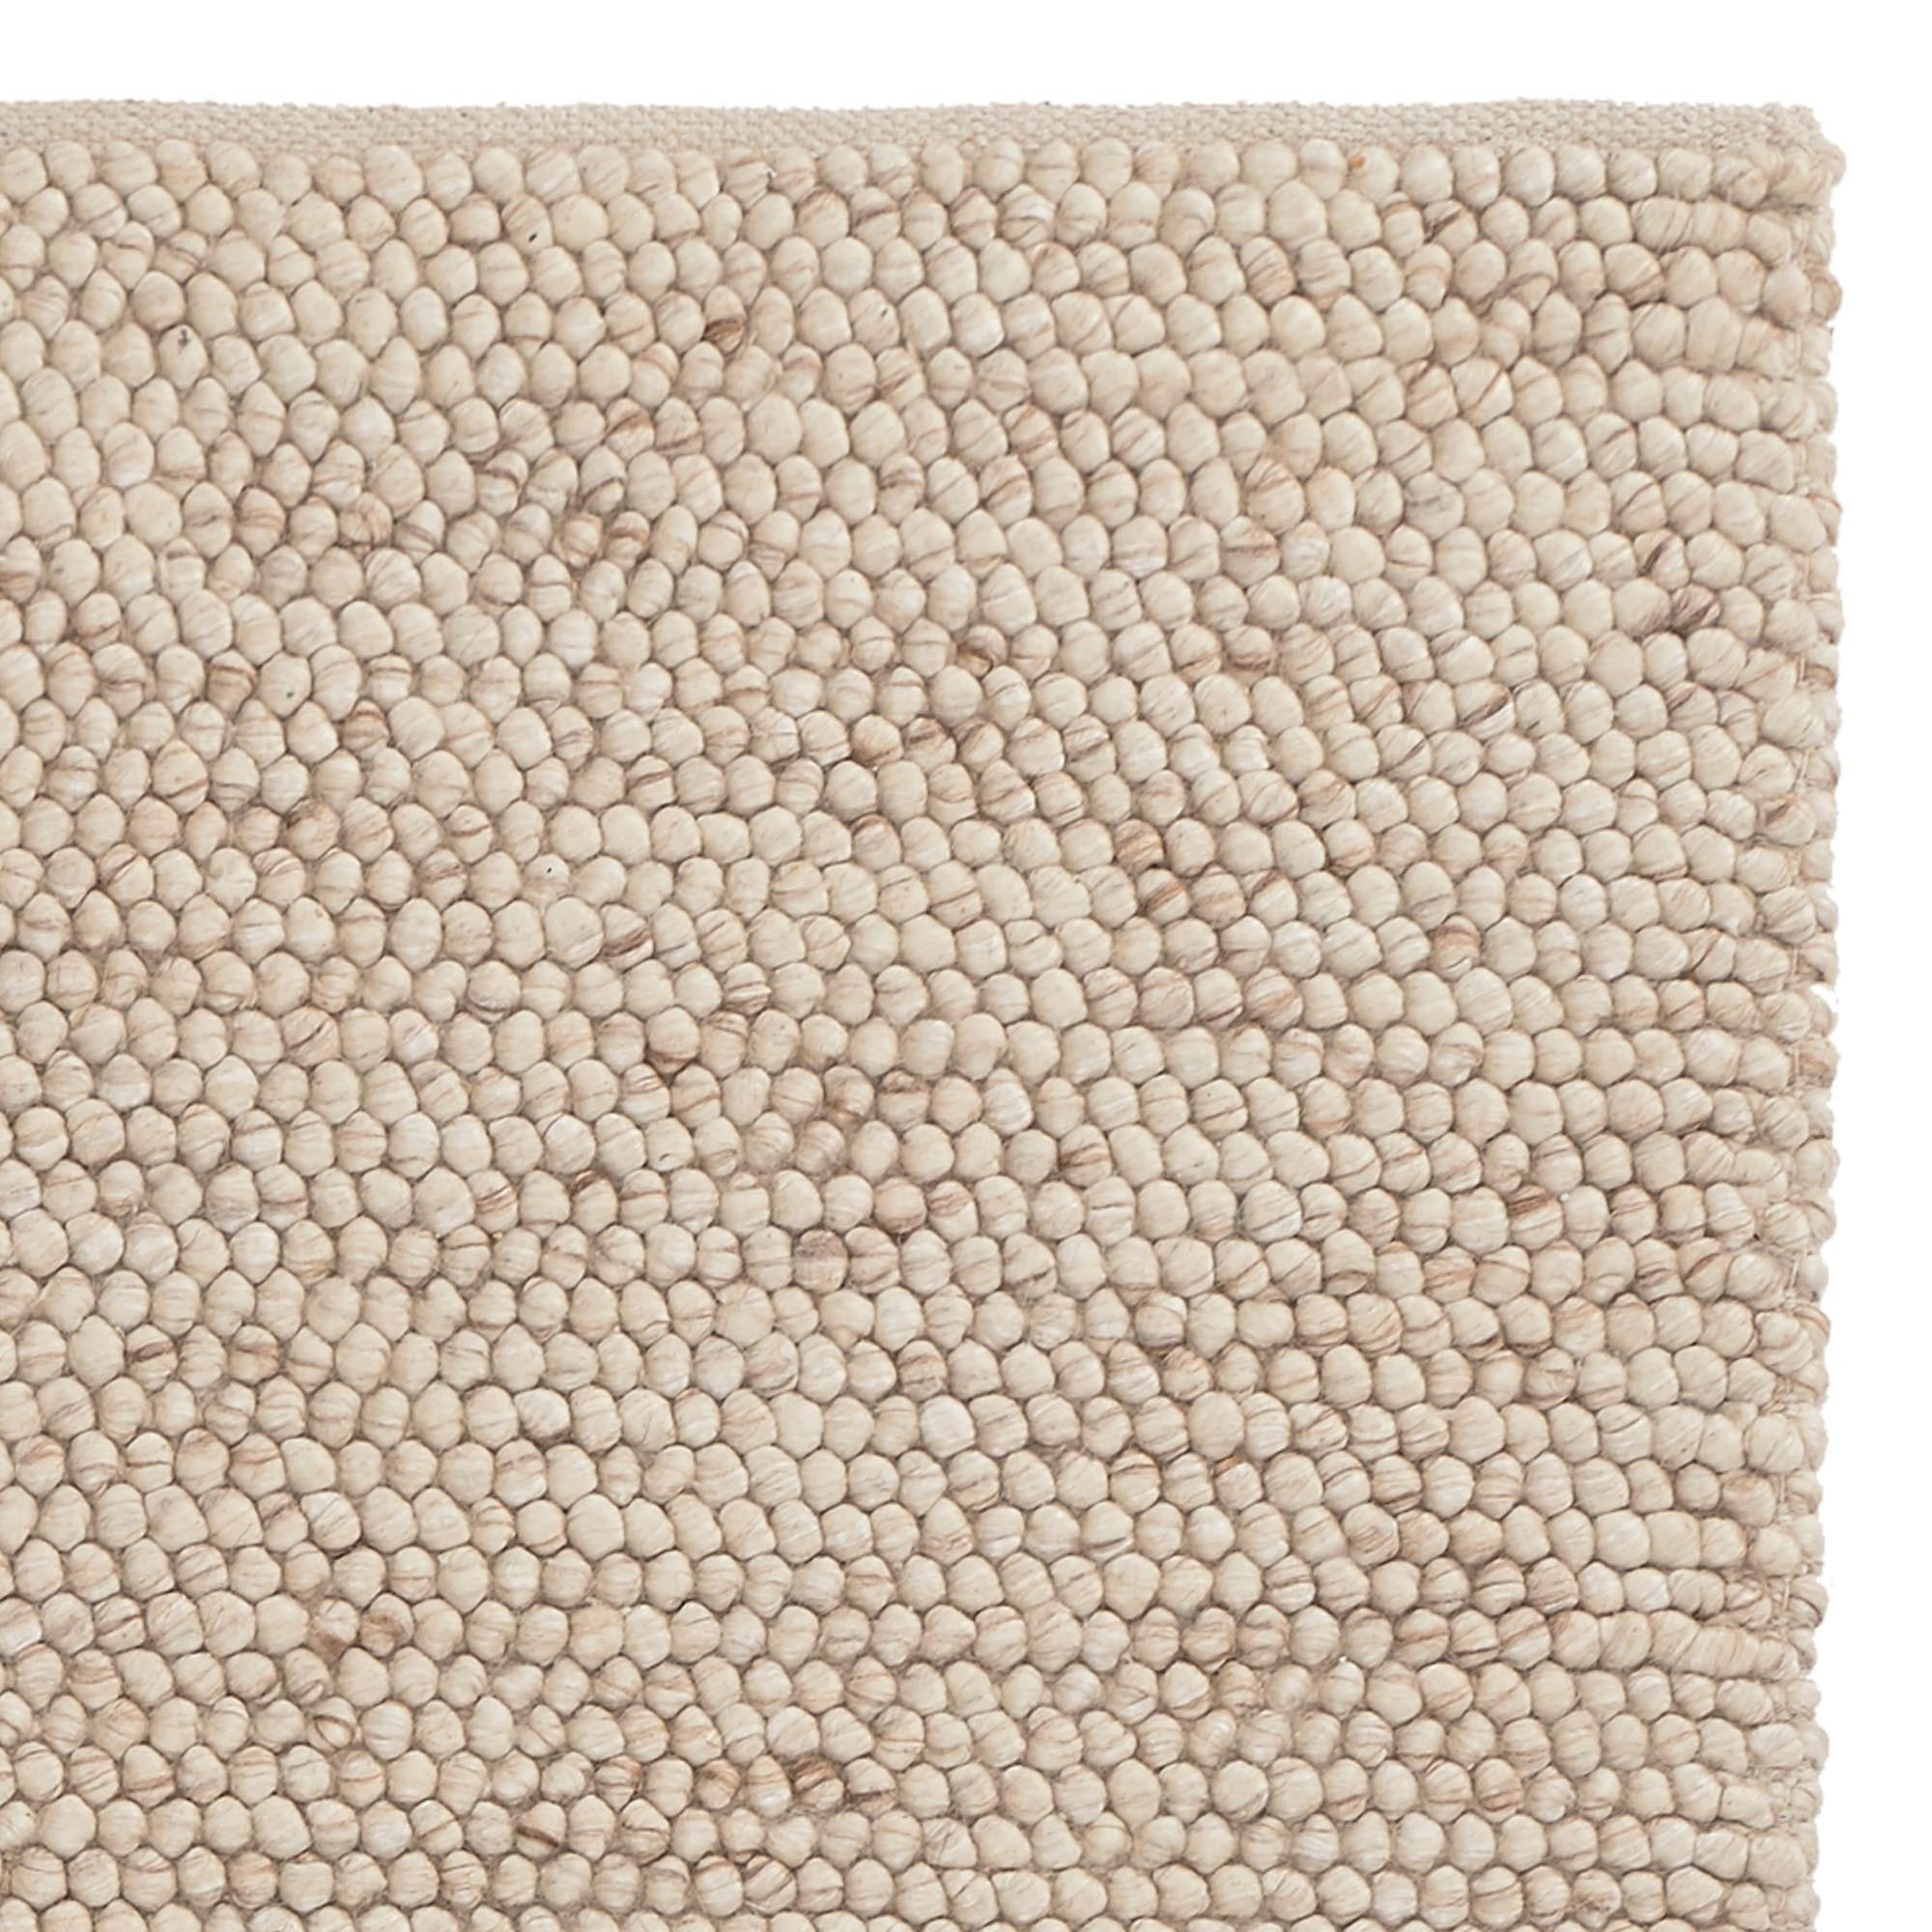 Ravi Wool Rug [Natural white]